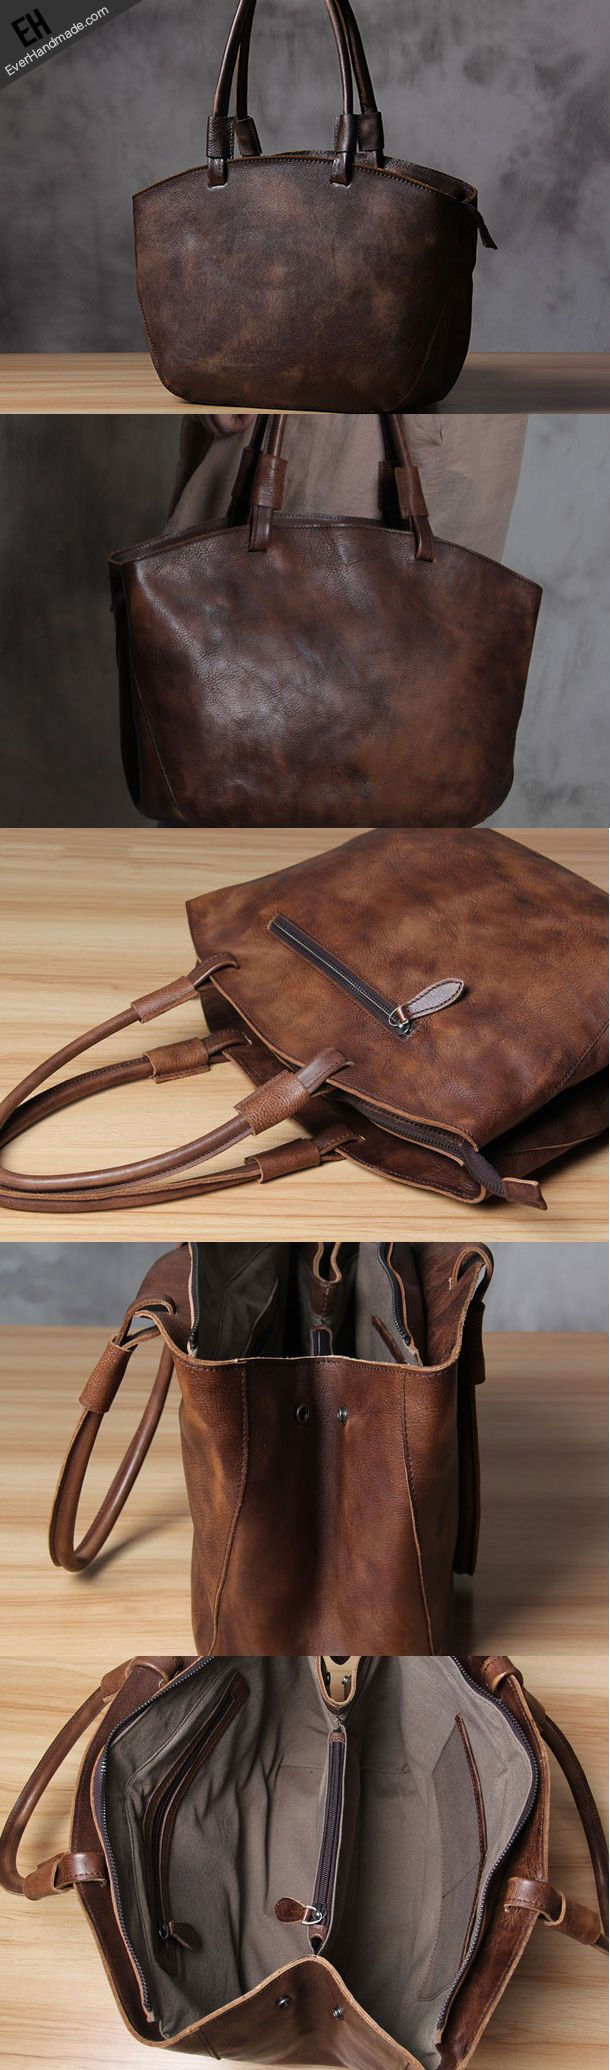 https://www.everhandmade.com/collections/frontpage/products/handmade-leather-handbag-purse-shoulder-bag-for-women-leather-shopper-bag-2